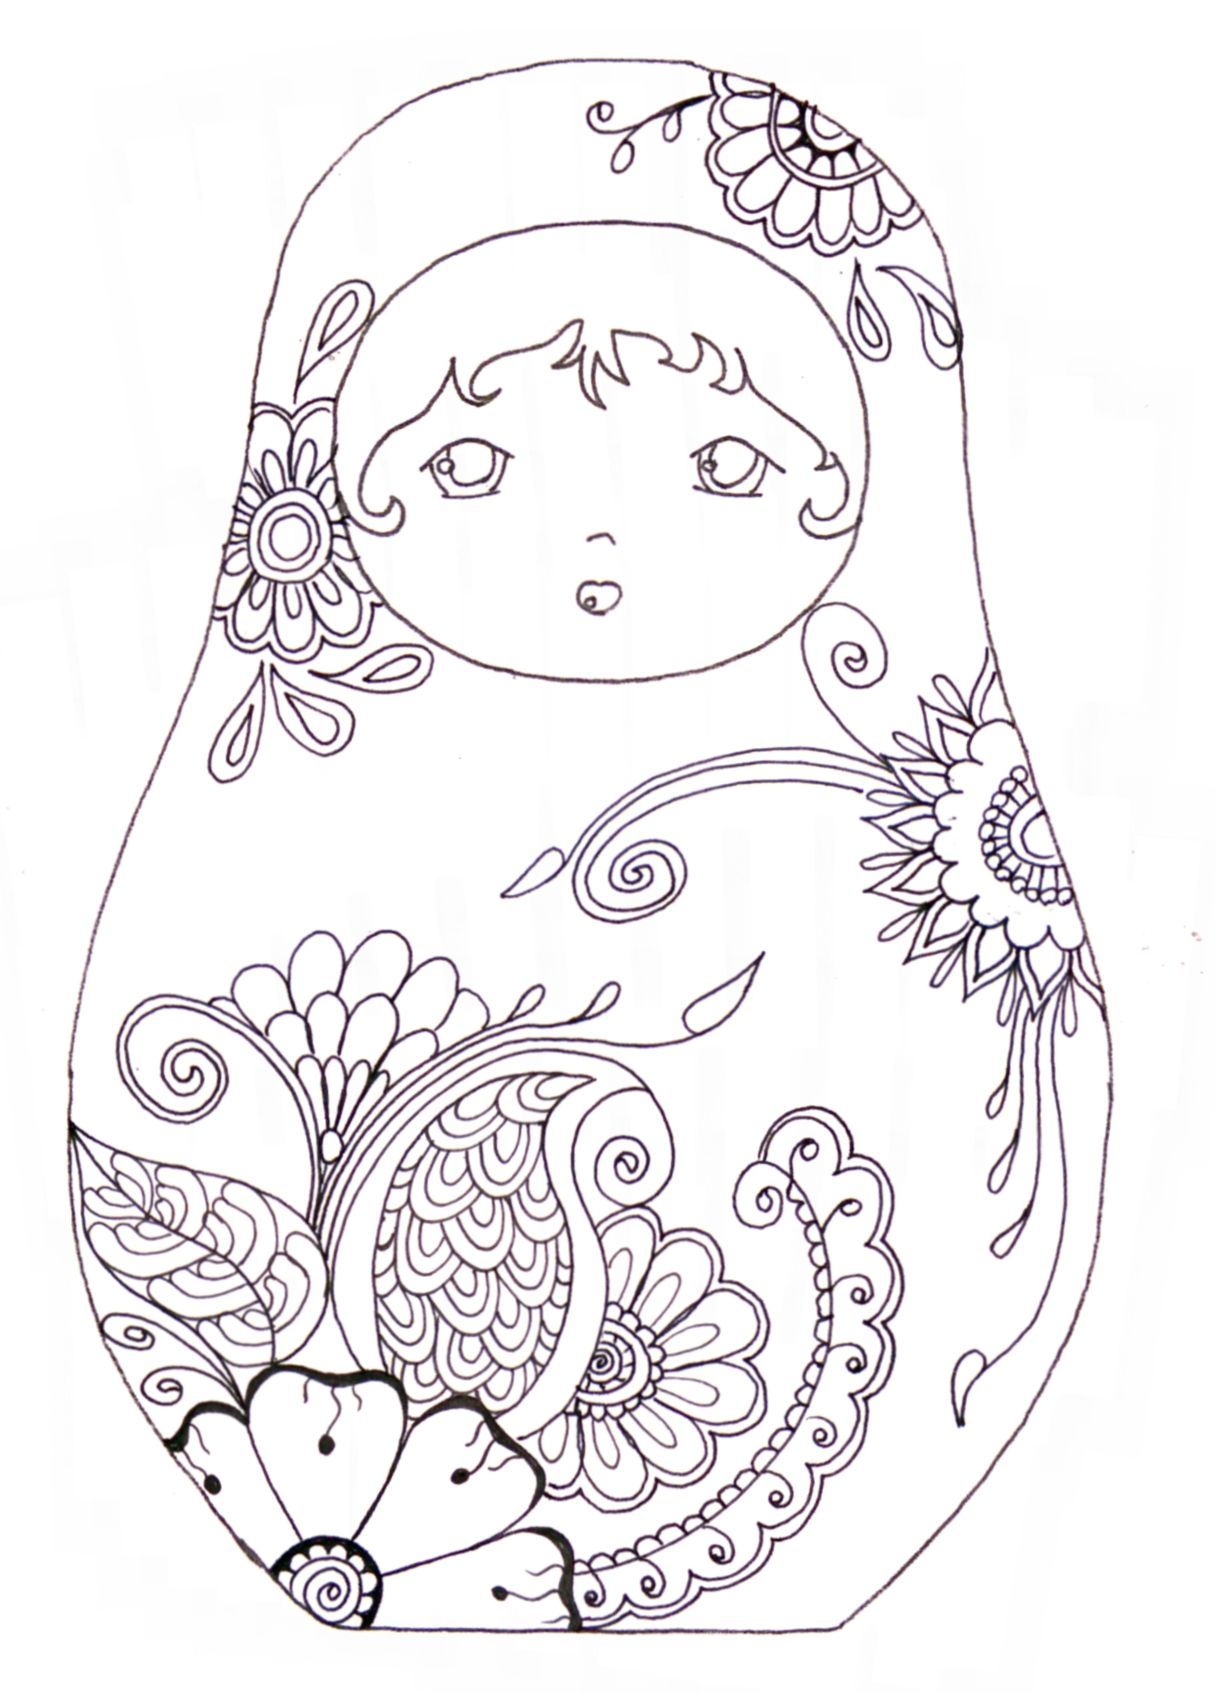 Matryoshka / coloriage I admit, I still like to colour